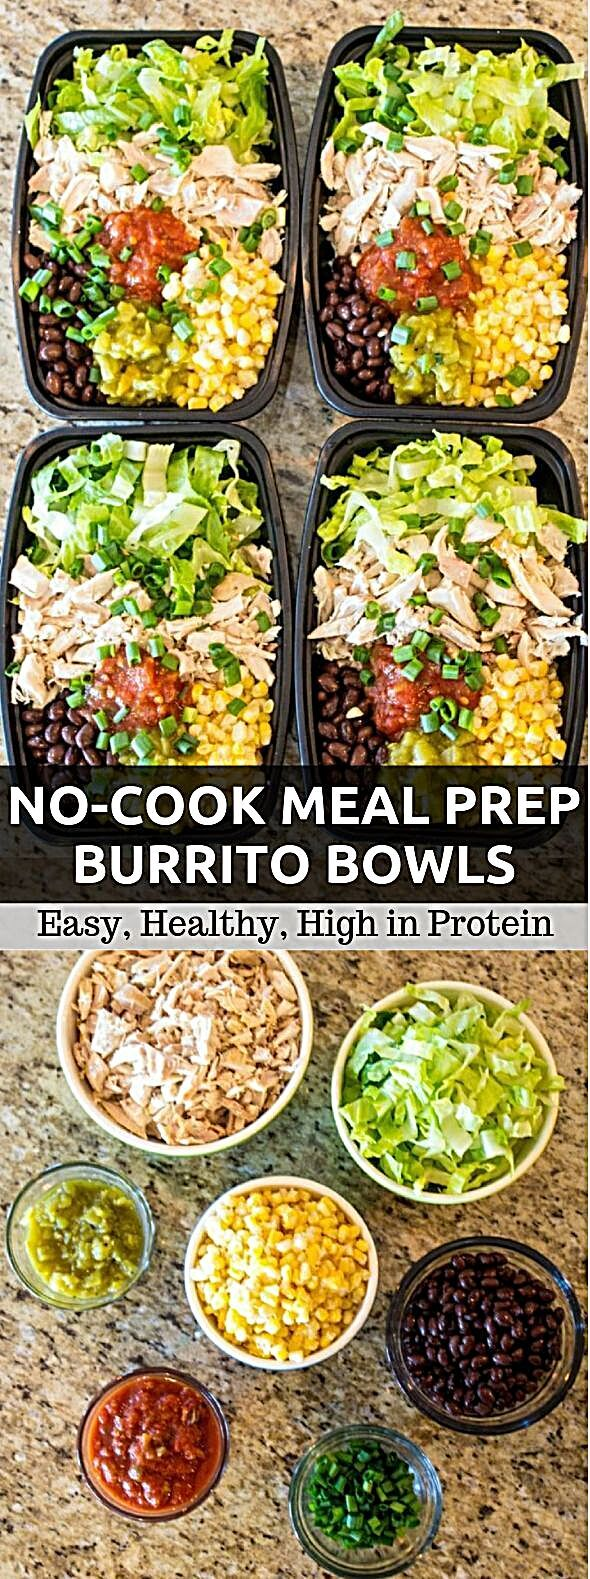 These solid dinner prep burrito bowls can be made in around 10 minutes and will keep going all of yo...